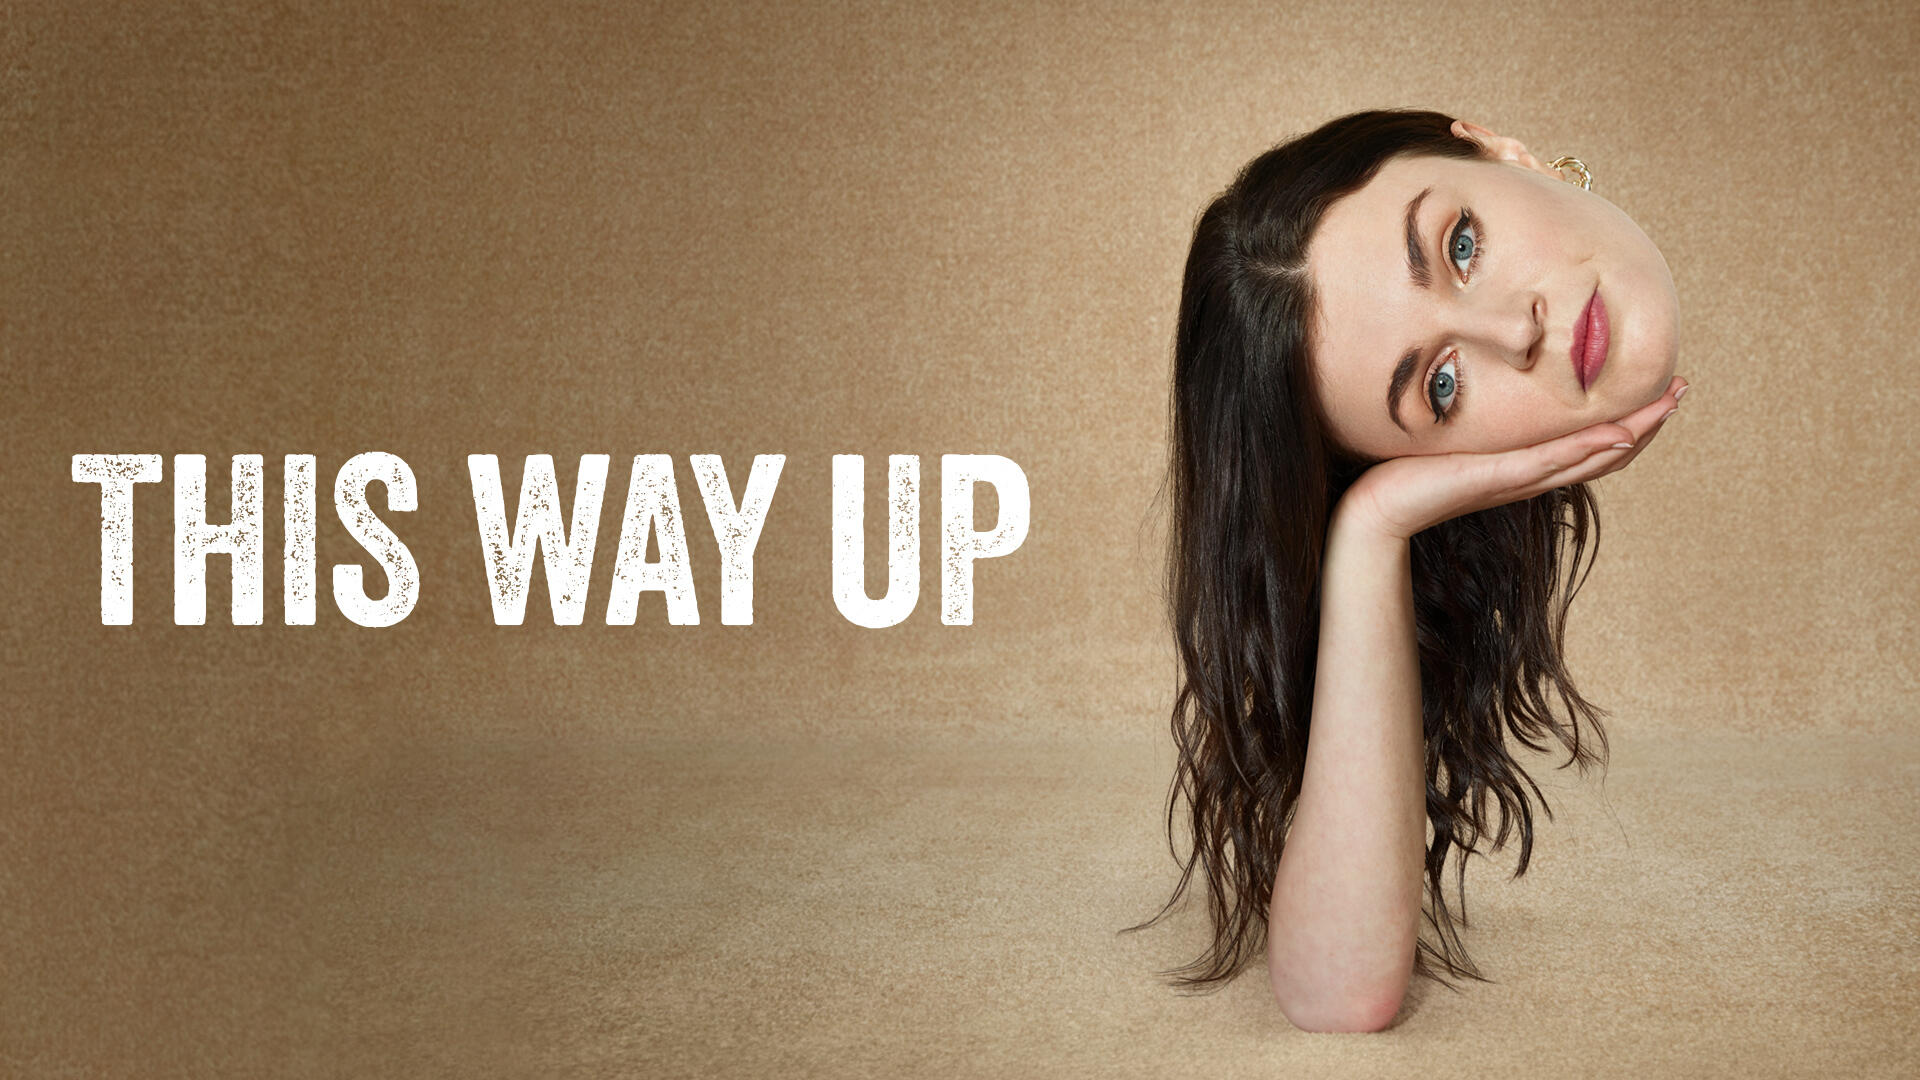 """This Way Up -- Season two of the BAFTA award-winning series is set after the events of the season one finale, with things in flux for Aine (Aisling Bea, """"Living With Yourself;"""" """"Quiz"""") and her sister, Shona (Sharon Horgan, """"Catastrophe;"""" """"Military Wives""""). Aine's starting to leave her time in rehab behind and live less cautiously, which may not be entirely wise. Will she and Richard (Tobias Menzies, """"The Crown;"""" """"Game of Thrones"""") make a go of it? Or continue to exist in the odd tension of the employer and employee? How will Shona and Charlotte (Indira Varma, """"Game of Thrones;"""" """"Luther"""") manage running a new business together and having feelings for each other? Will Shona be able to go through with marrying Vish (Aasif Mandvi, """"Evil;"""" """"The Brink"""")? Planning a wedding? Can she tell him what happened? Is there anything more to tell? Aisling Bea, shown. (Courtesy of Hulu)"""